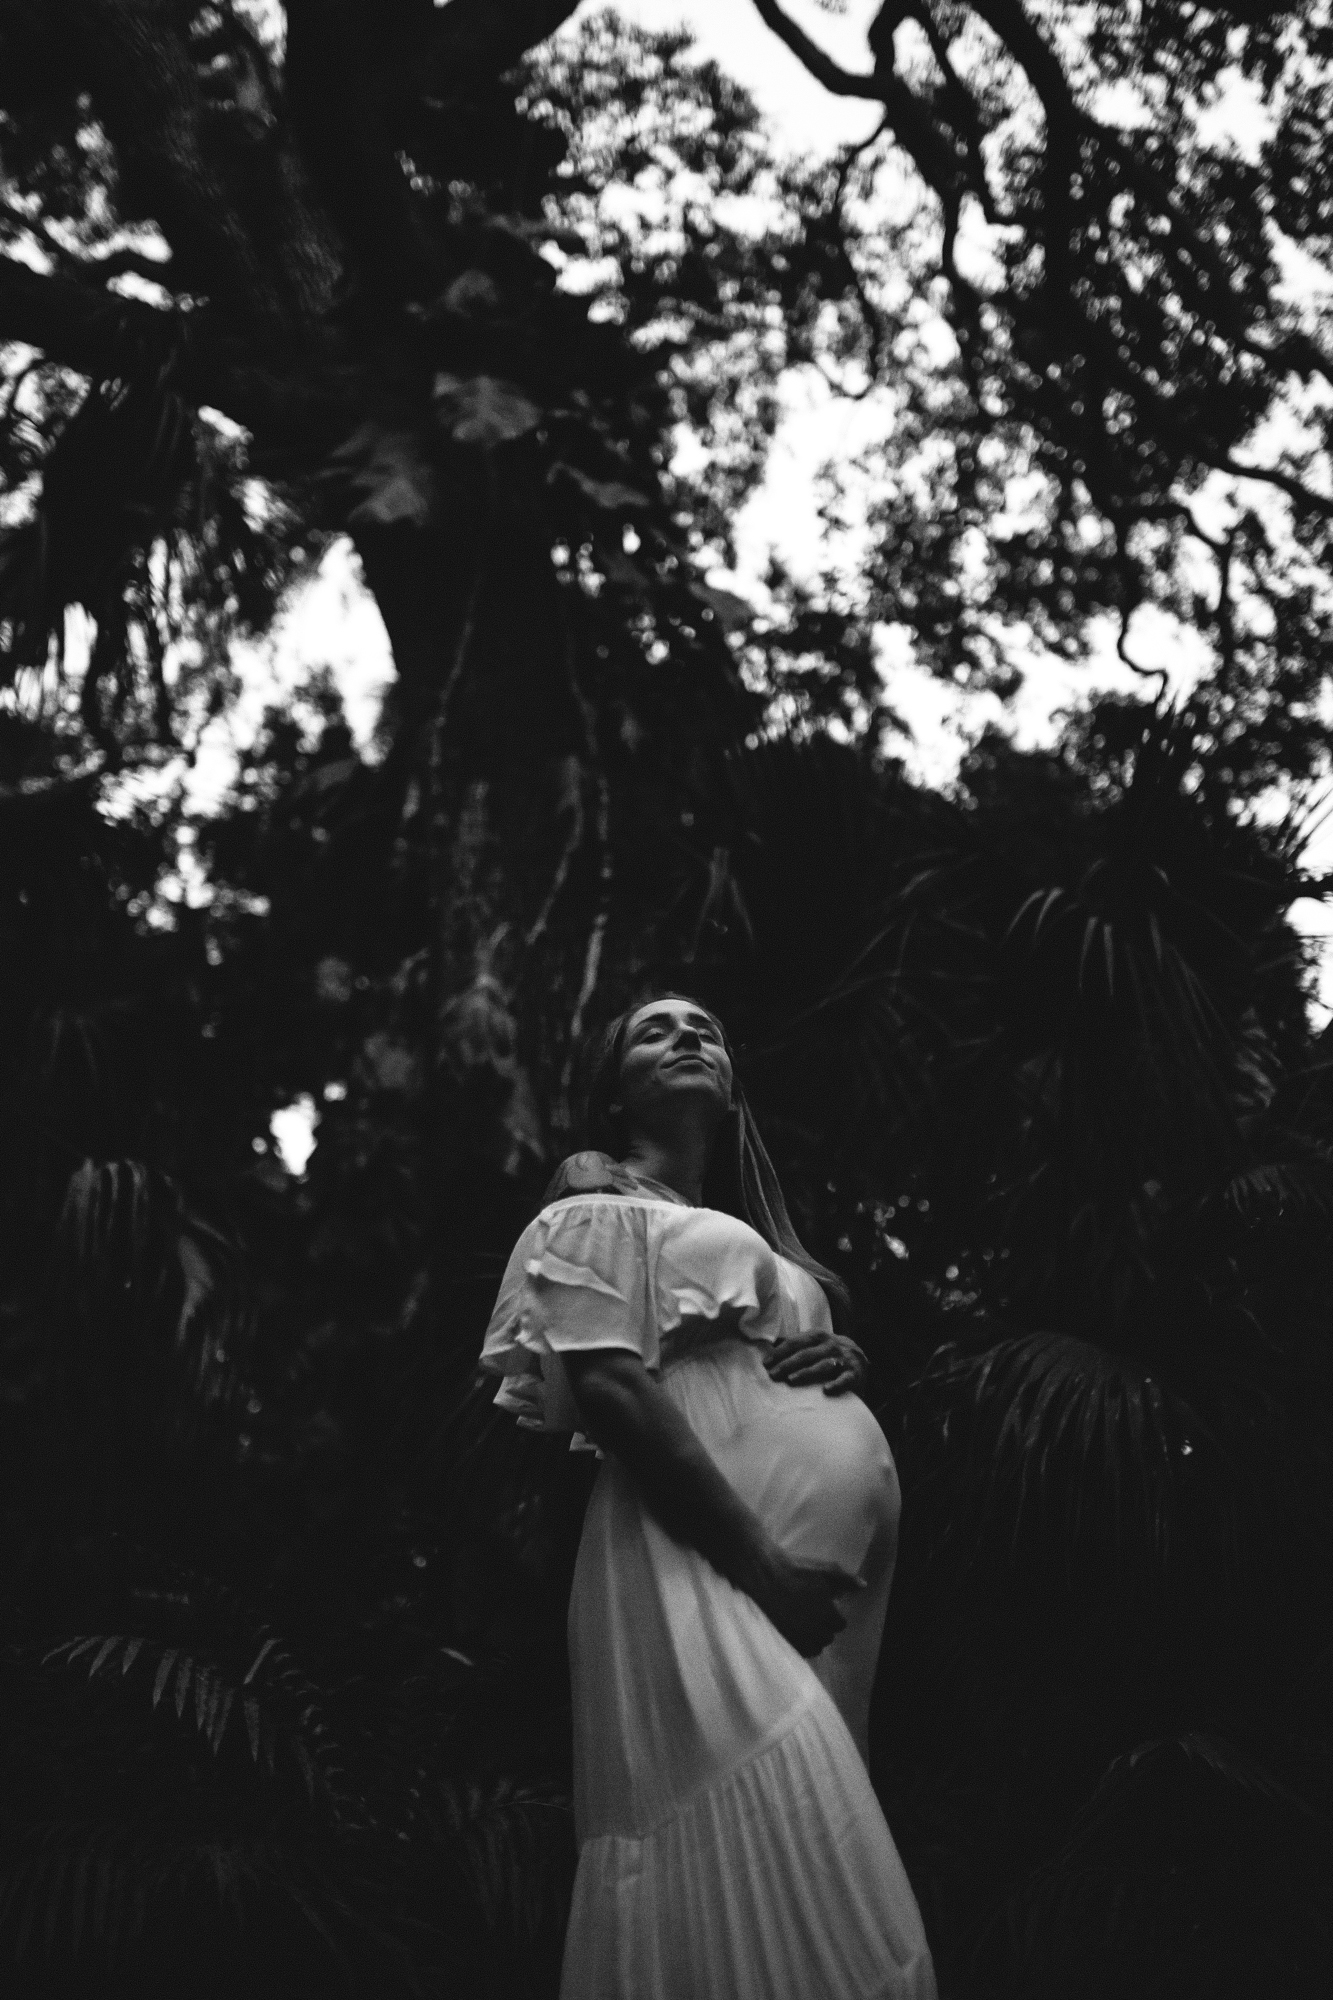 black and white maternity portraits, tampa bay fl